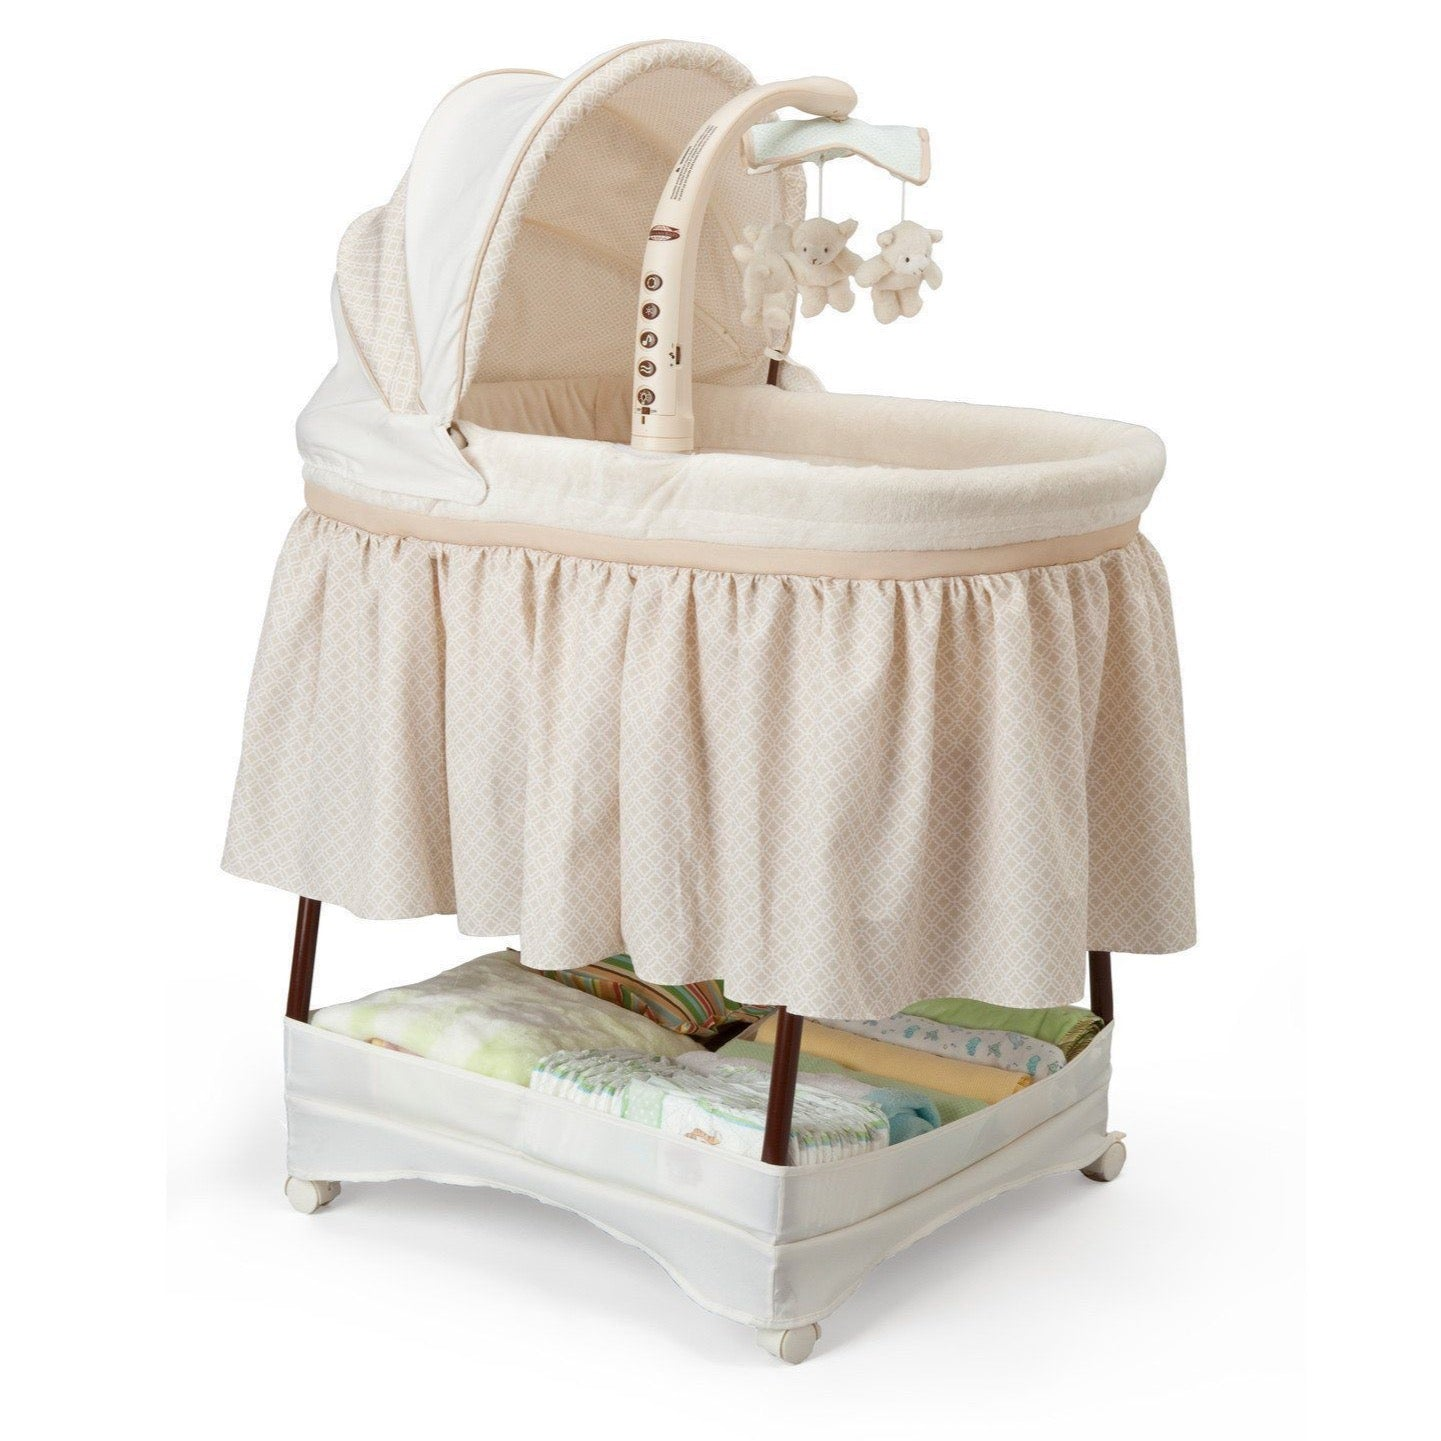 kids bed side view. Delta Children Sand (274) Time Elite Gliding Bassinet, Right Side View C1c Kids Bed P